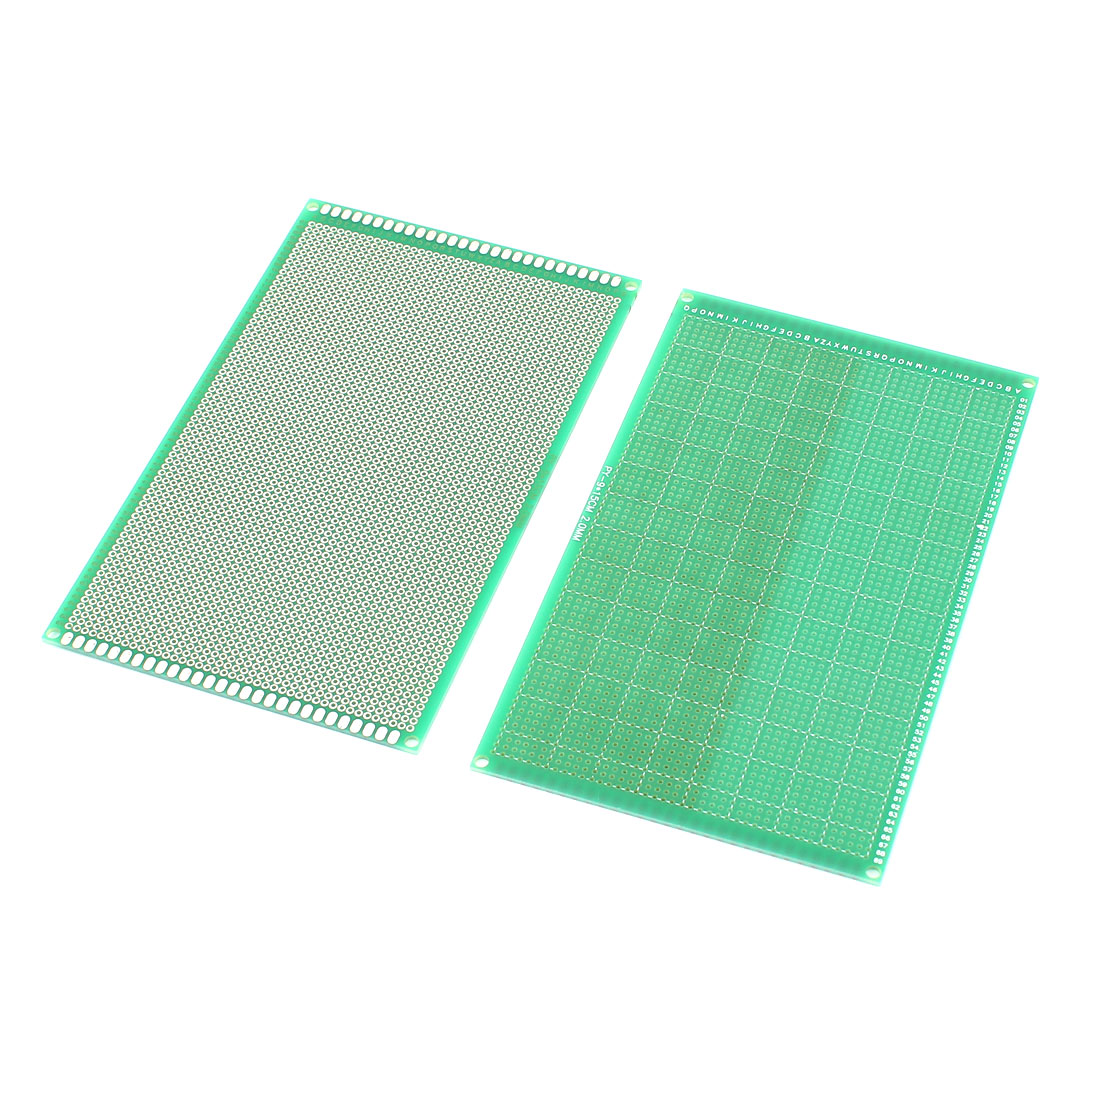 15cm x 9cm Single Side Universal PCB Prototyping Circuit Board Green 2Pcs